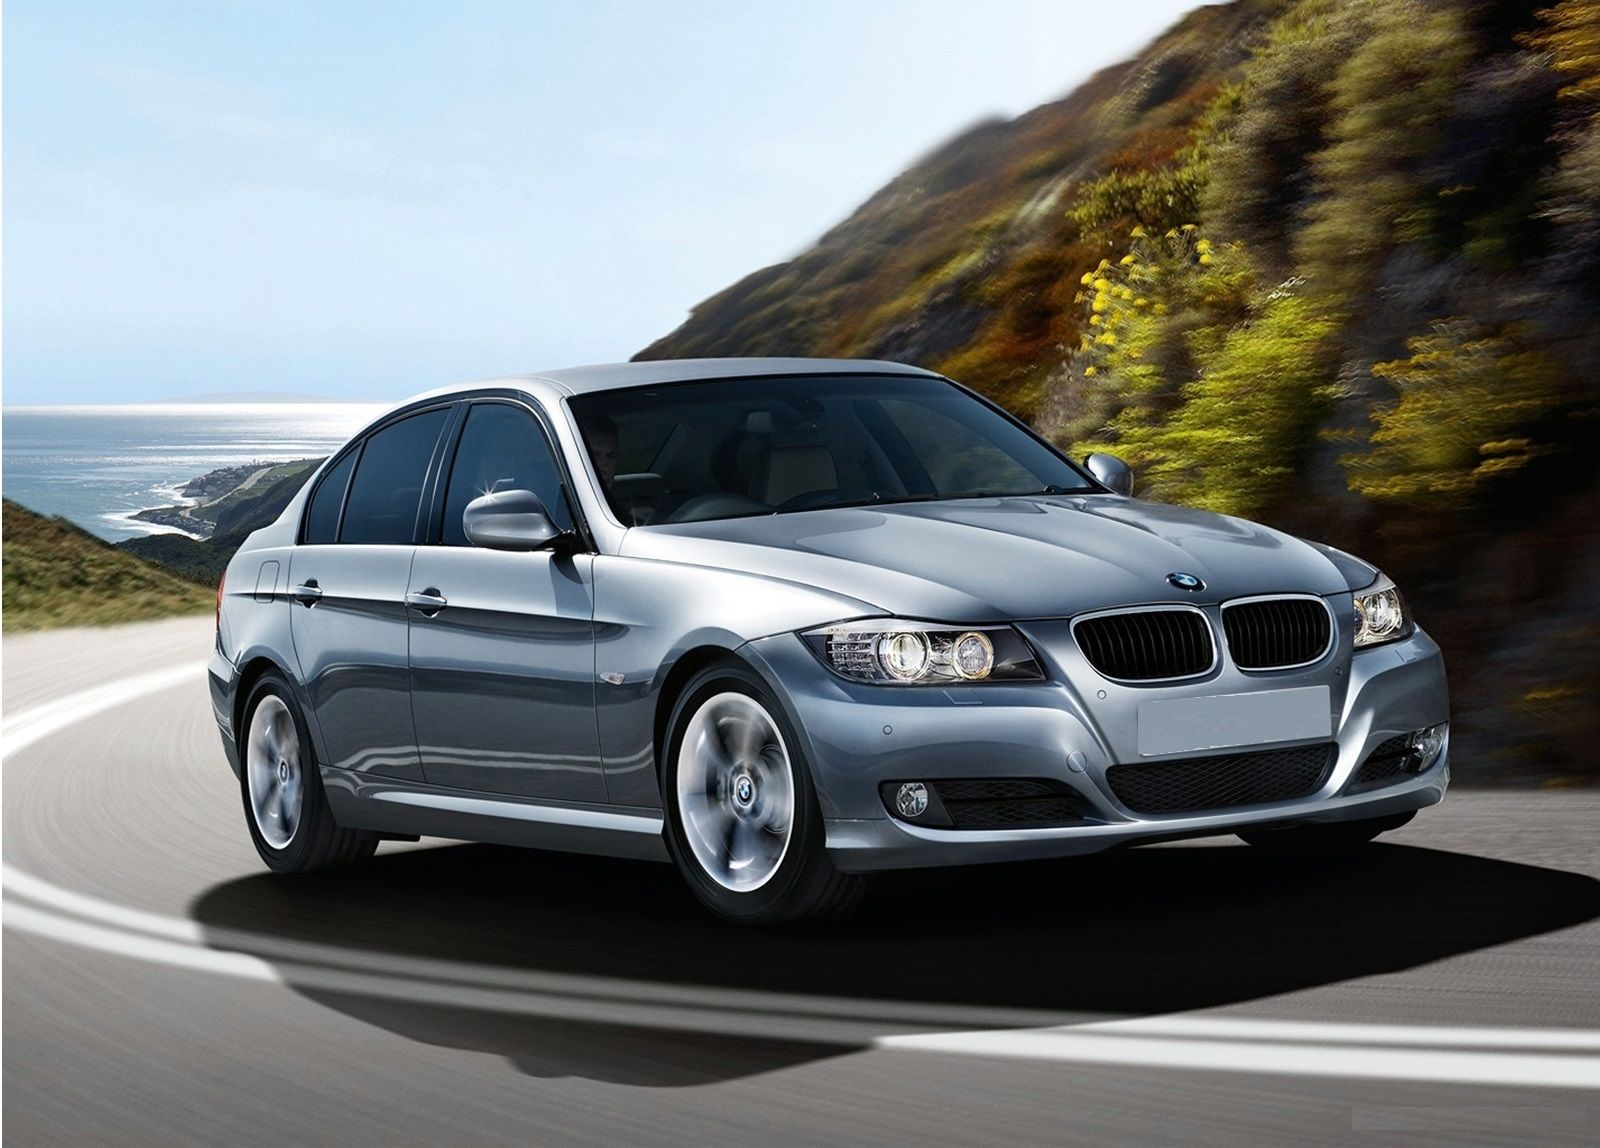 Get Great Prices On Used 2010 BMW 3 Series E90, E92, E93